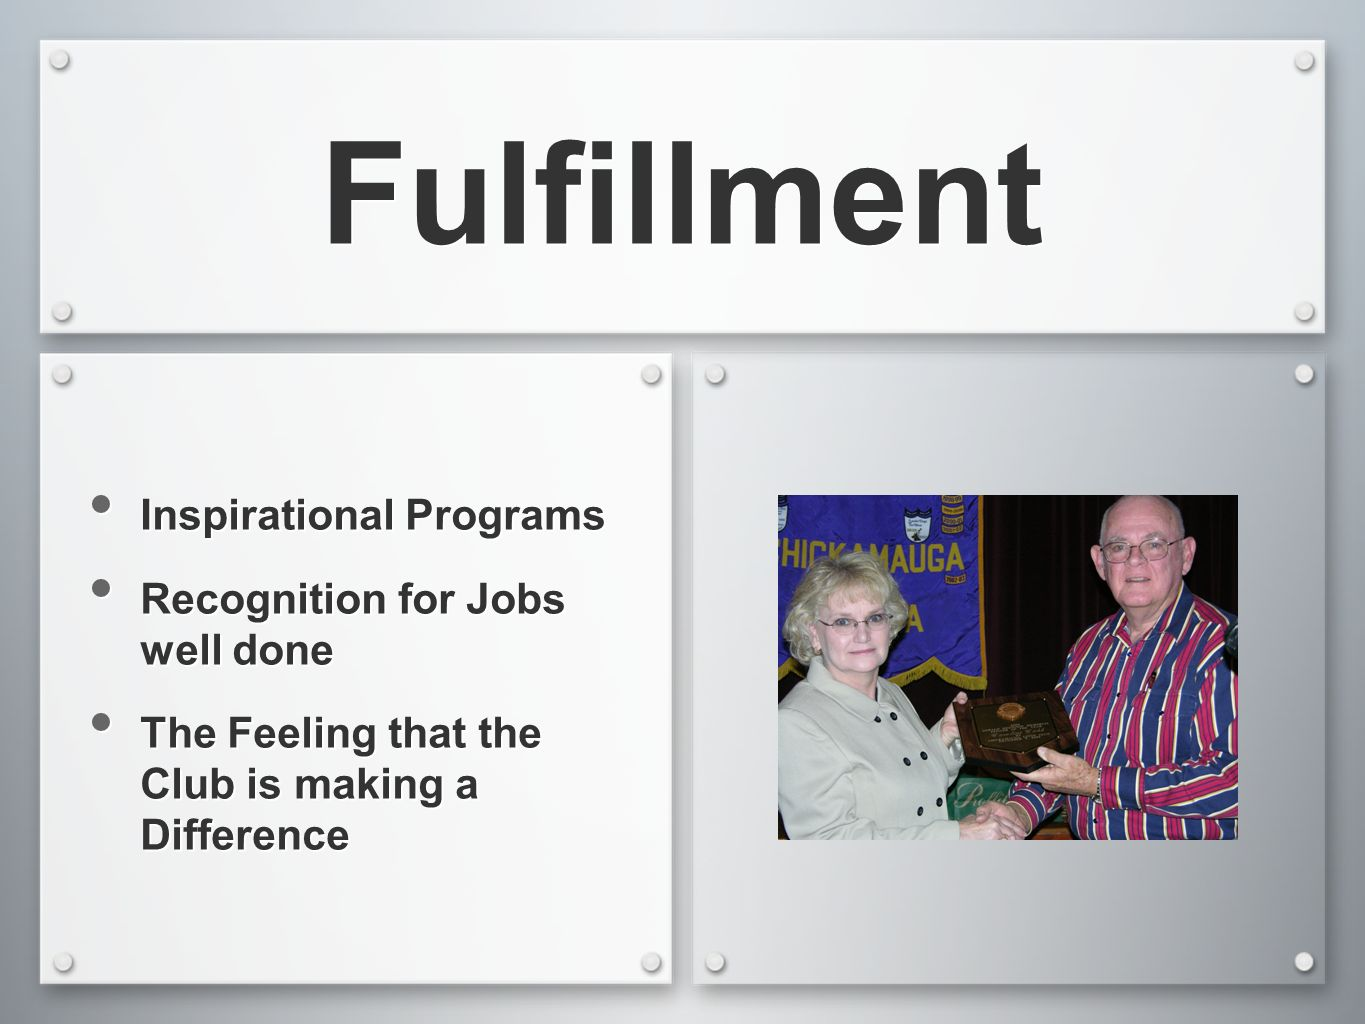 Fulfillment Inspirational Programs Recognition for Jobs well done The Feeling that the Club is making a Difference Inspirational Programs Recognition for Jobs well done The Feeling that the Club is making a Difference